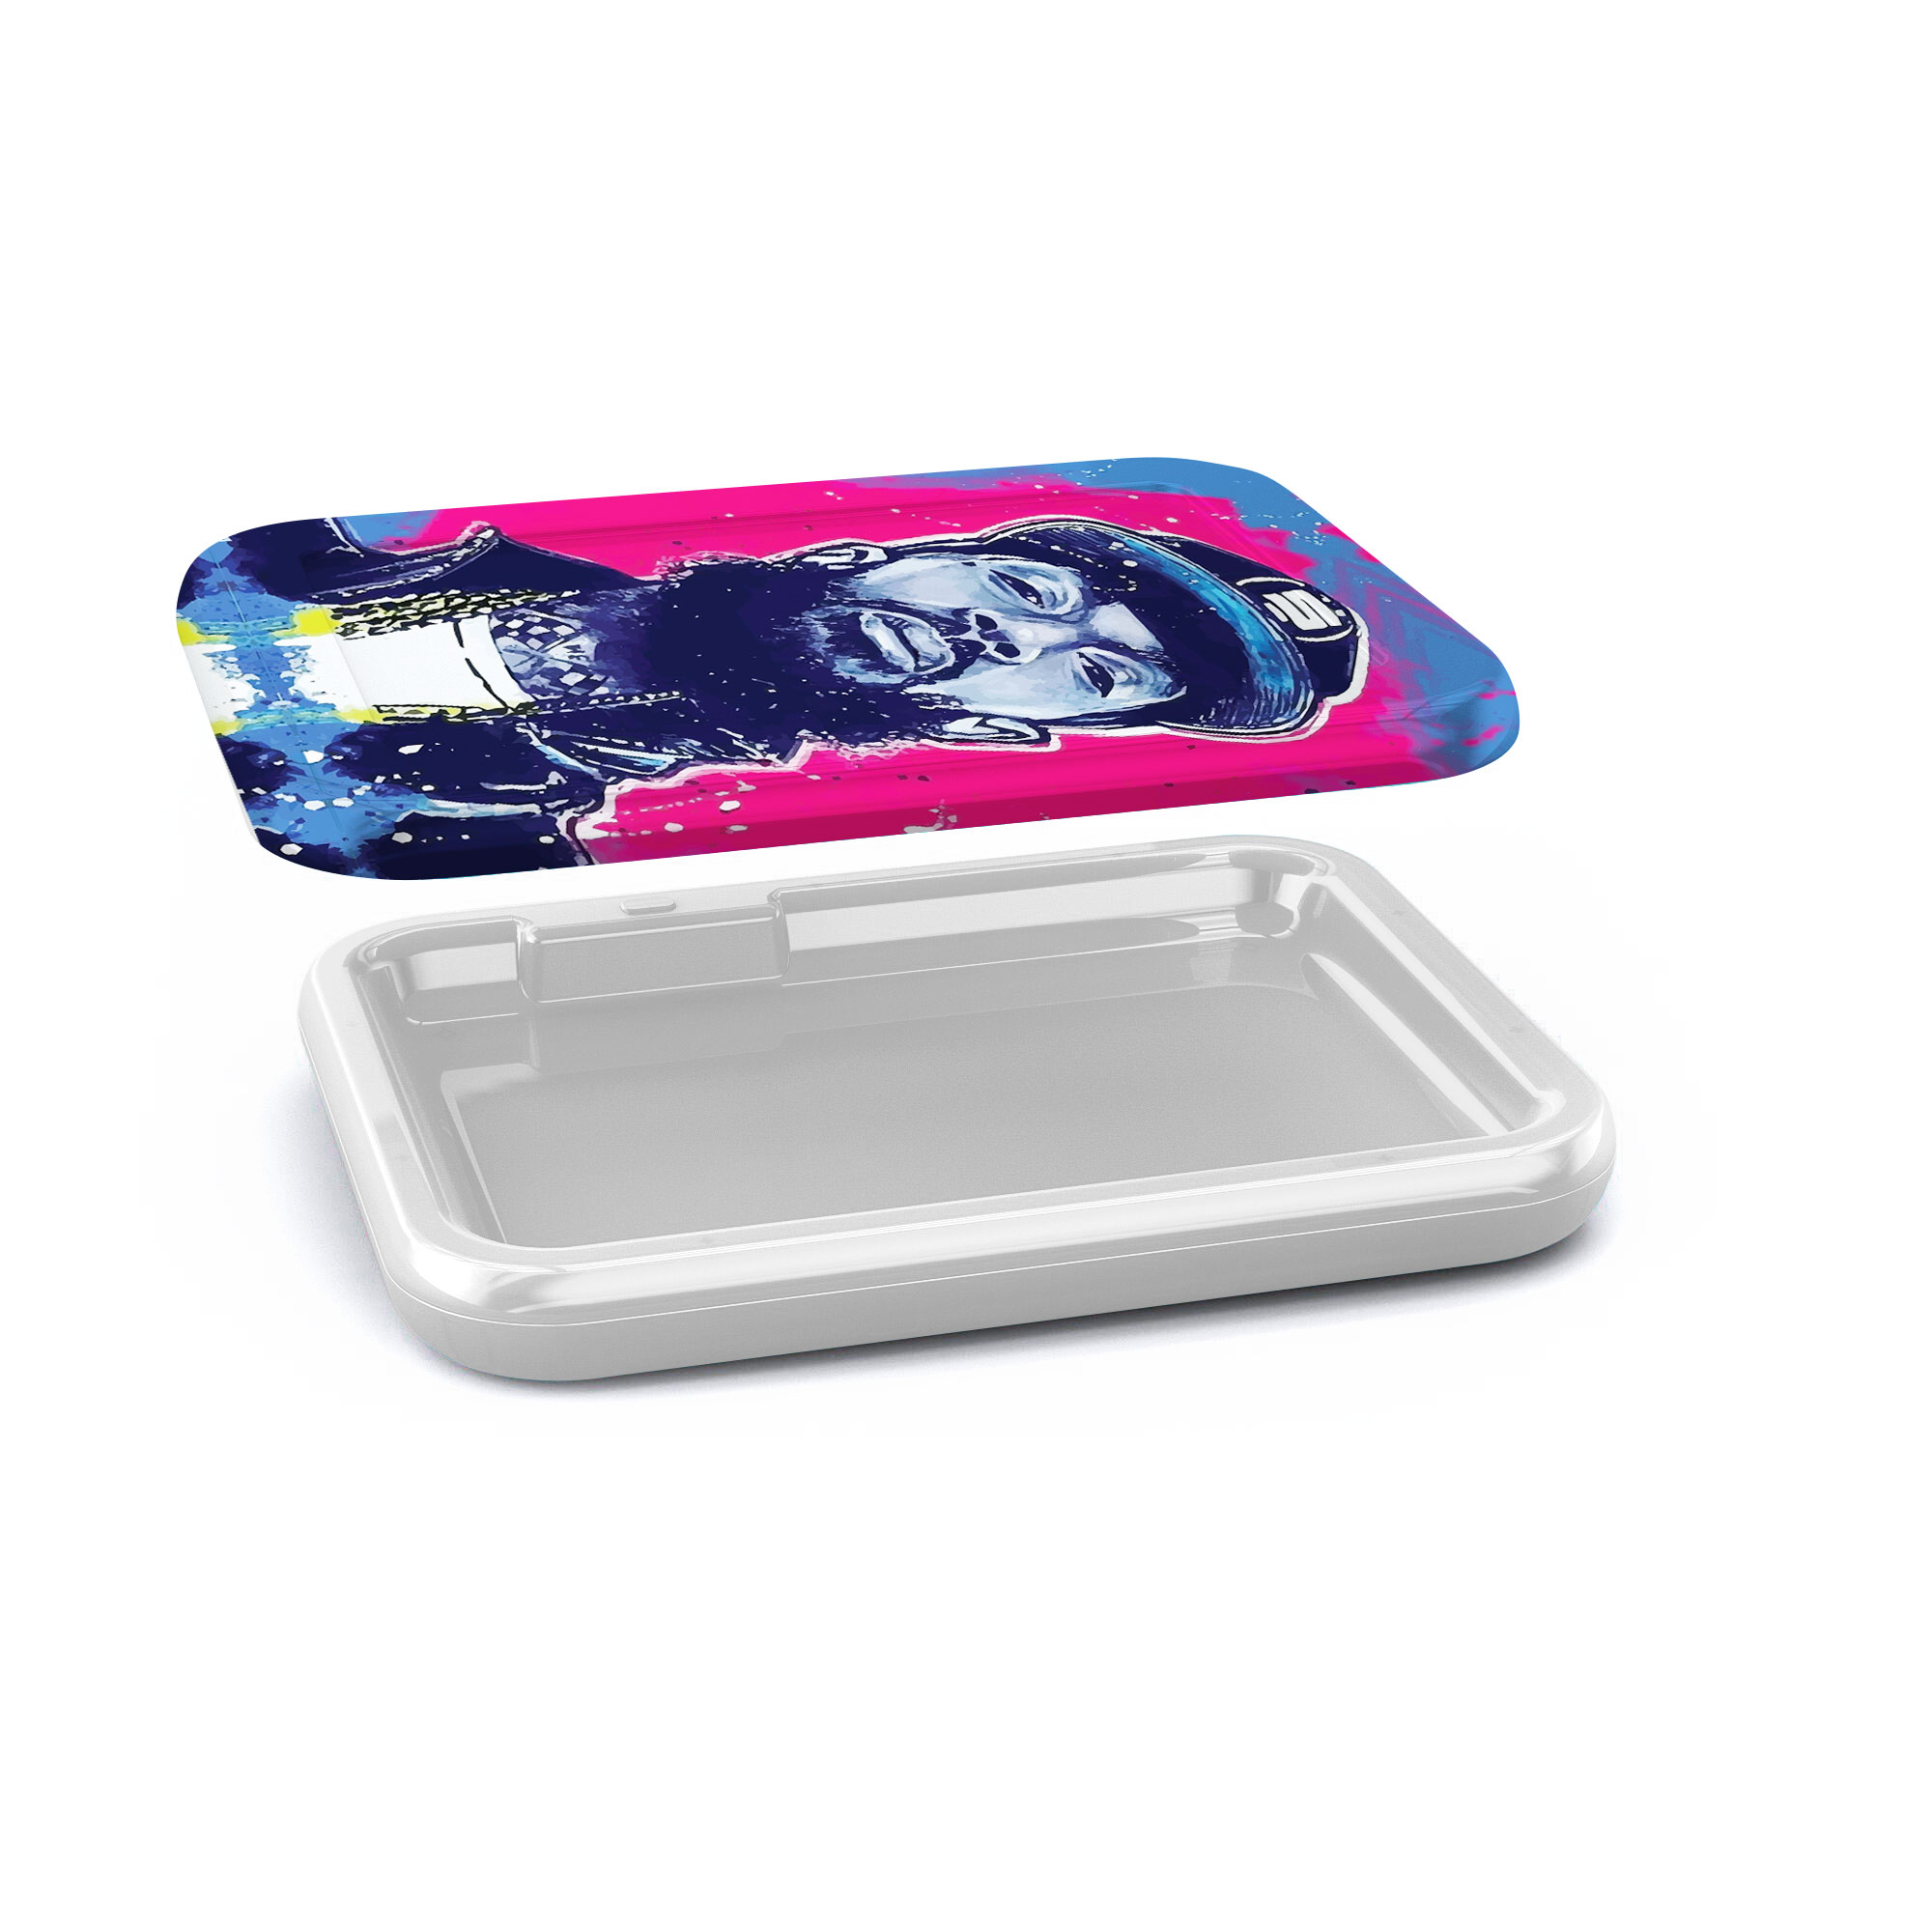 A Smoke Accessories Custom Light up rolling tray plastic led custom backwood runtz cookie glow tray with lid